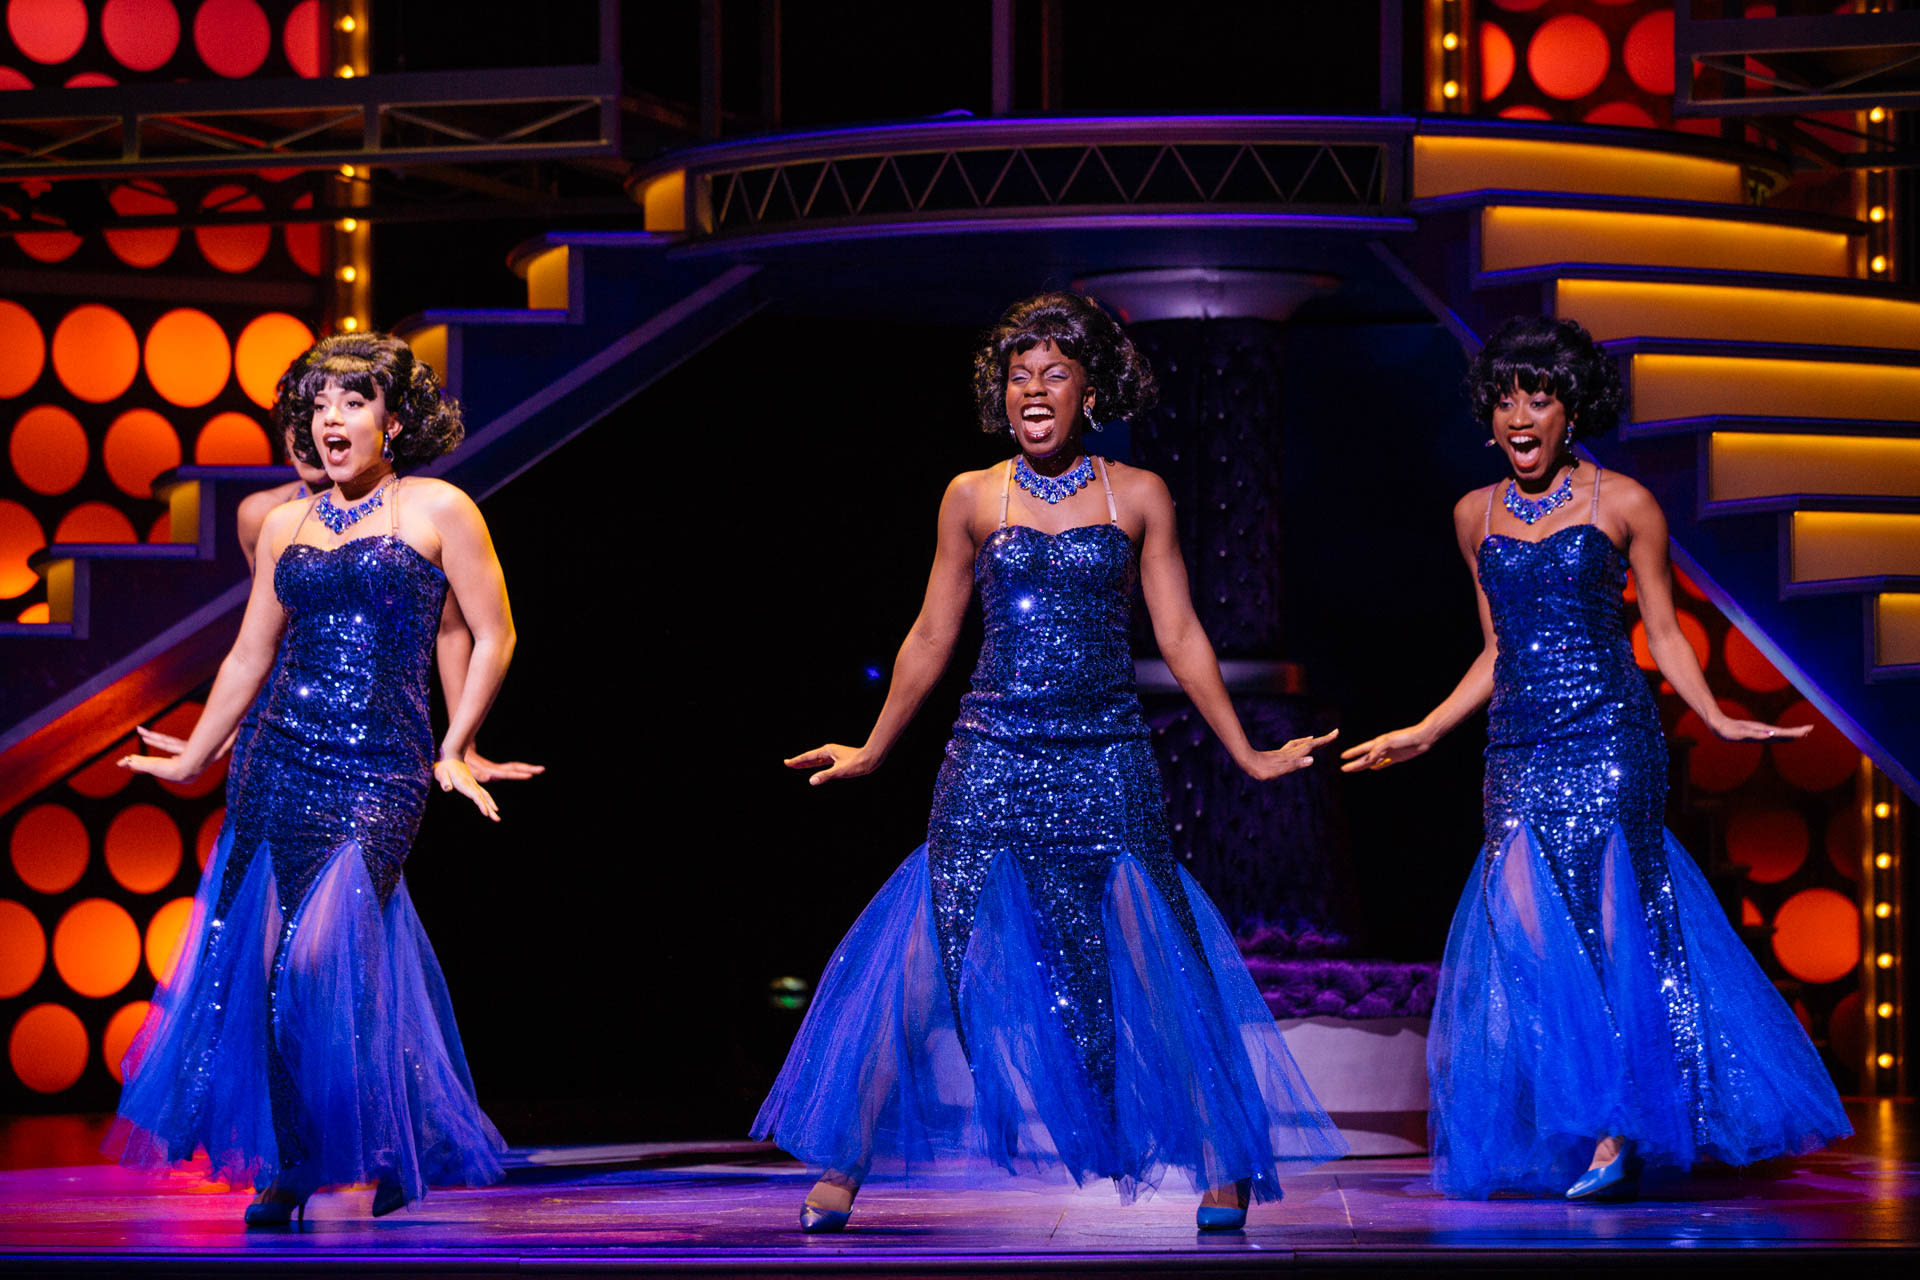 Tuts dreamgirls cast of dreamgirls photo by os galindo vklae4